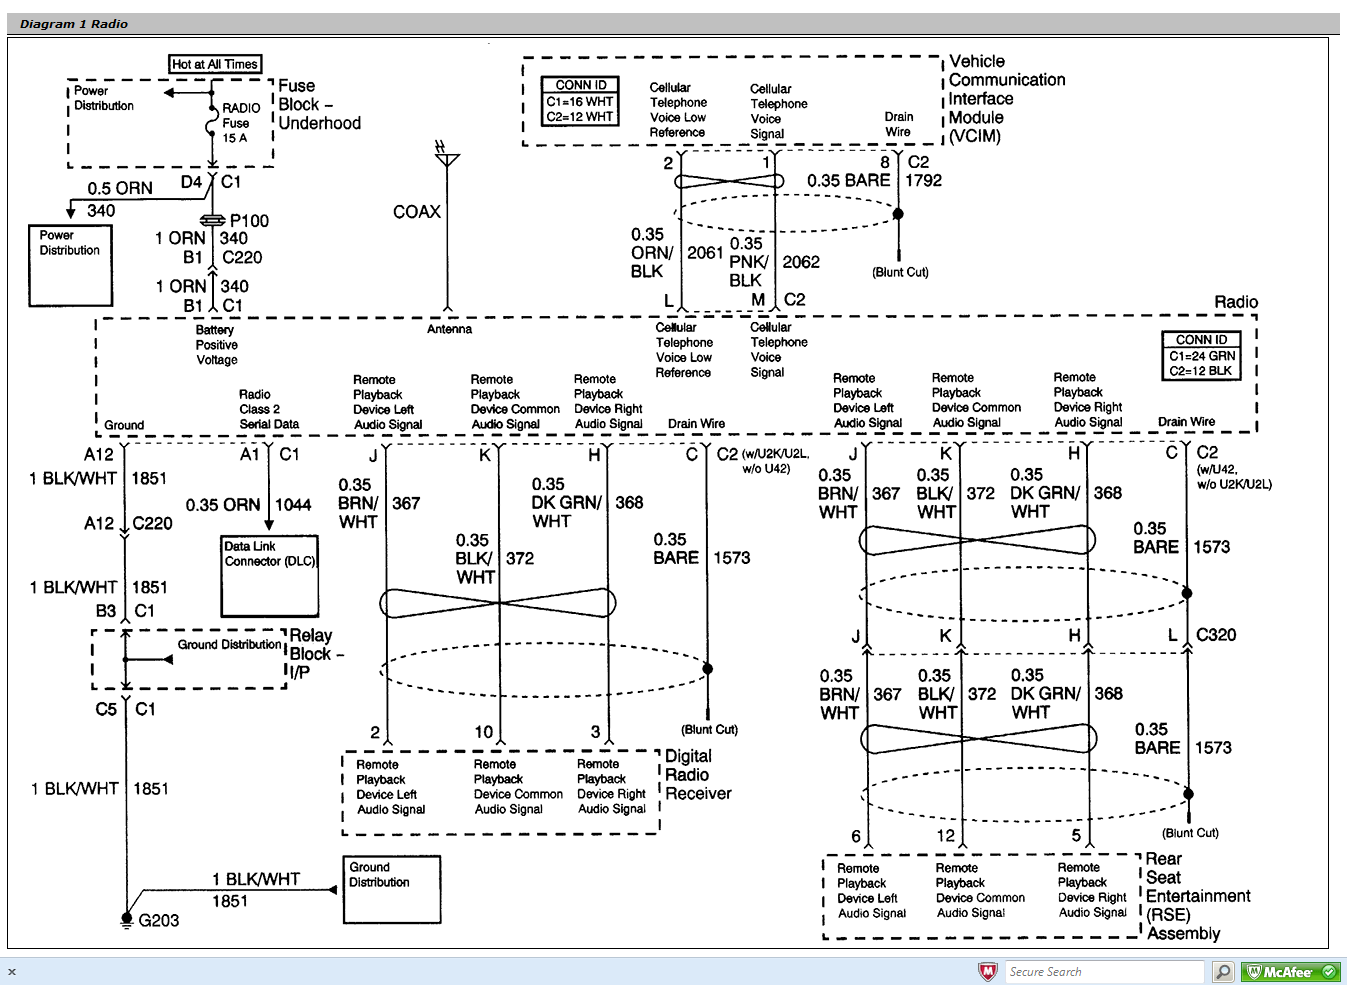 DIAGRAM] 2002 Gmc Sierra 2500hd Wiring Diagram FULL Version HD Quality Wiring  Diagram - AIRESTRUCTURE.PUNTIMPRESA.ITPuntimpresa